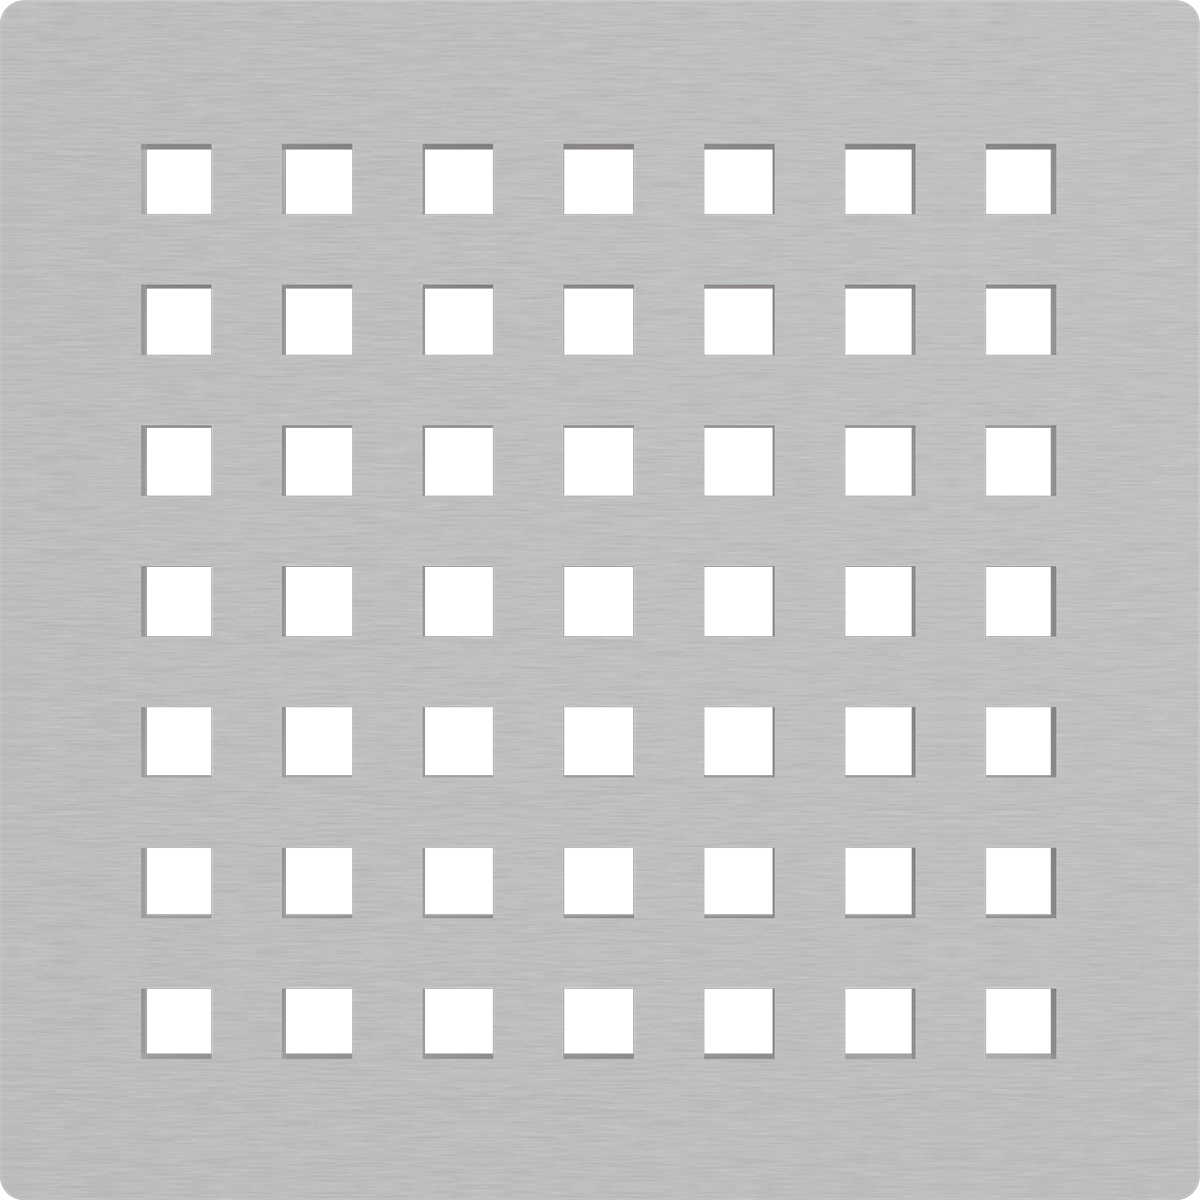 Grid floor png. Stainless steel mpv